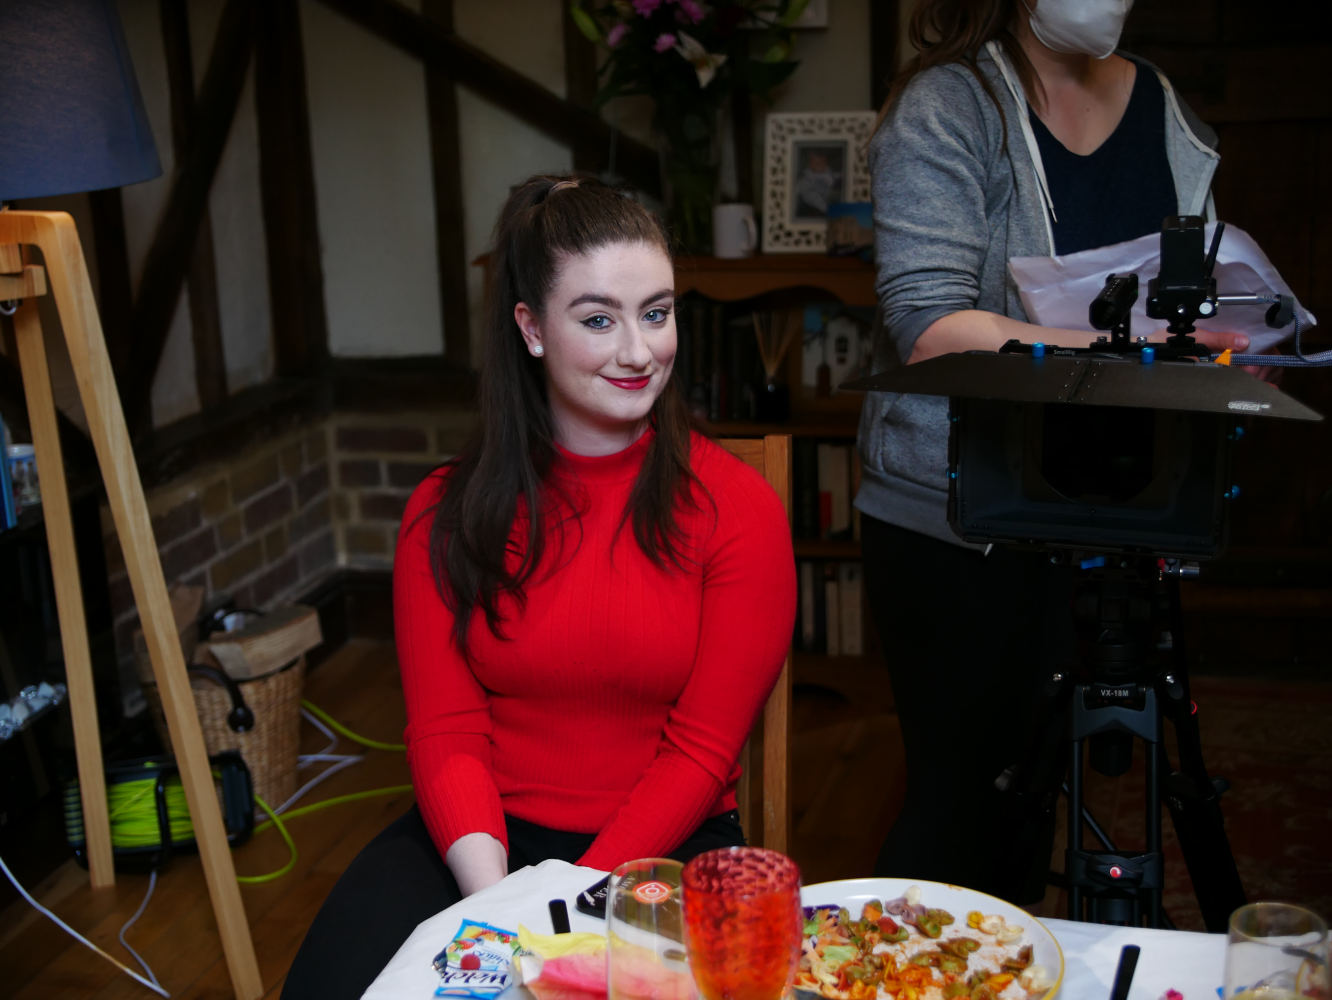 Behind the scenes photo from comedy short film Keep It in the Family of Amber Doig-Throne